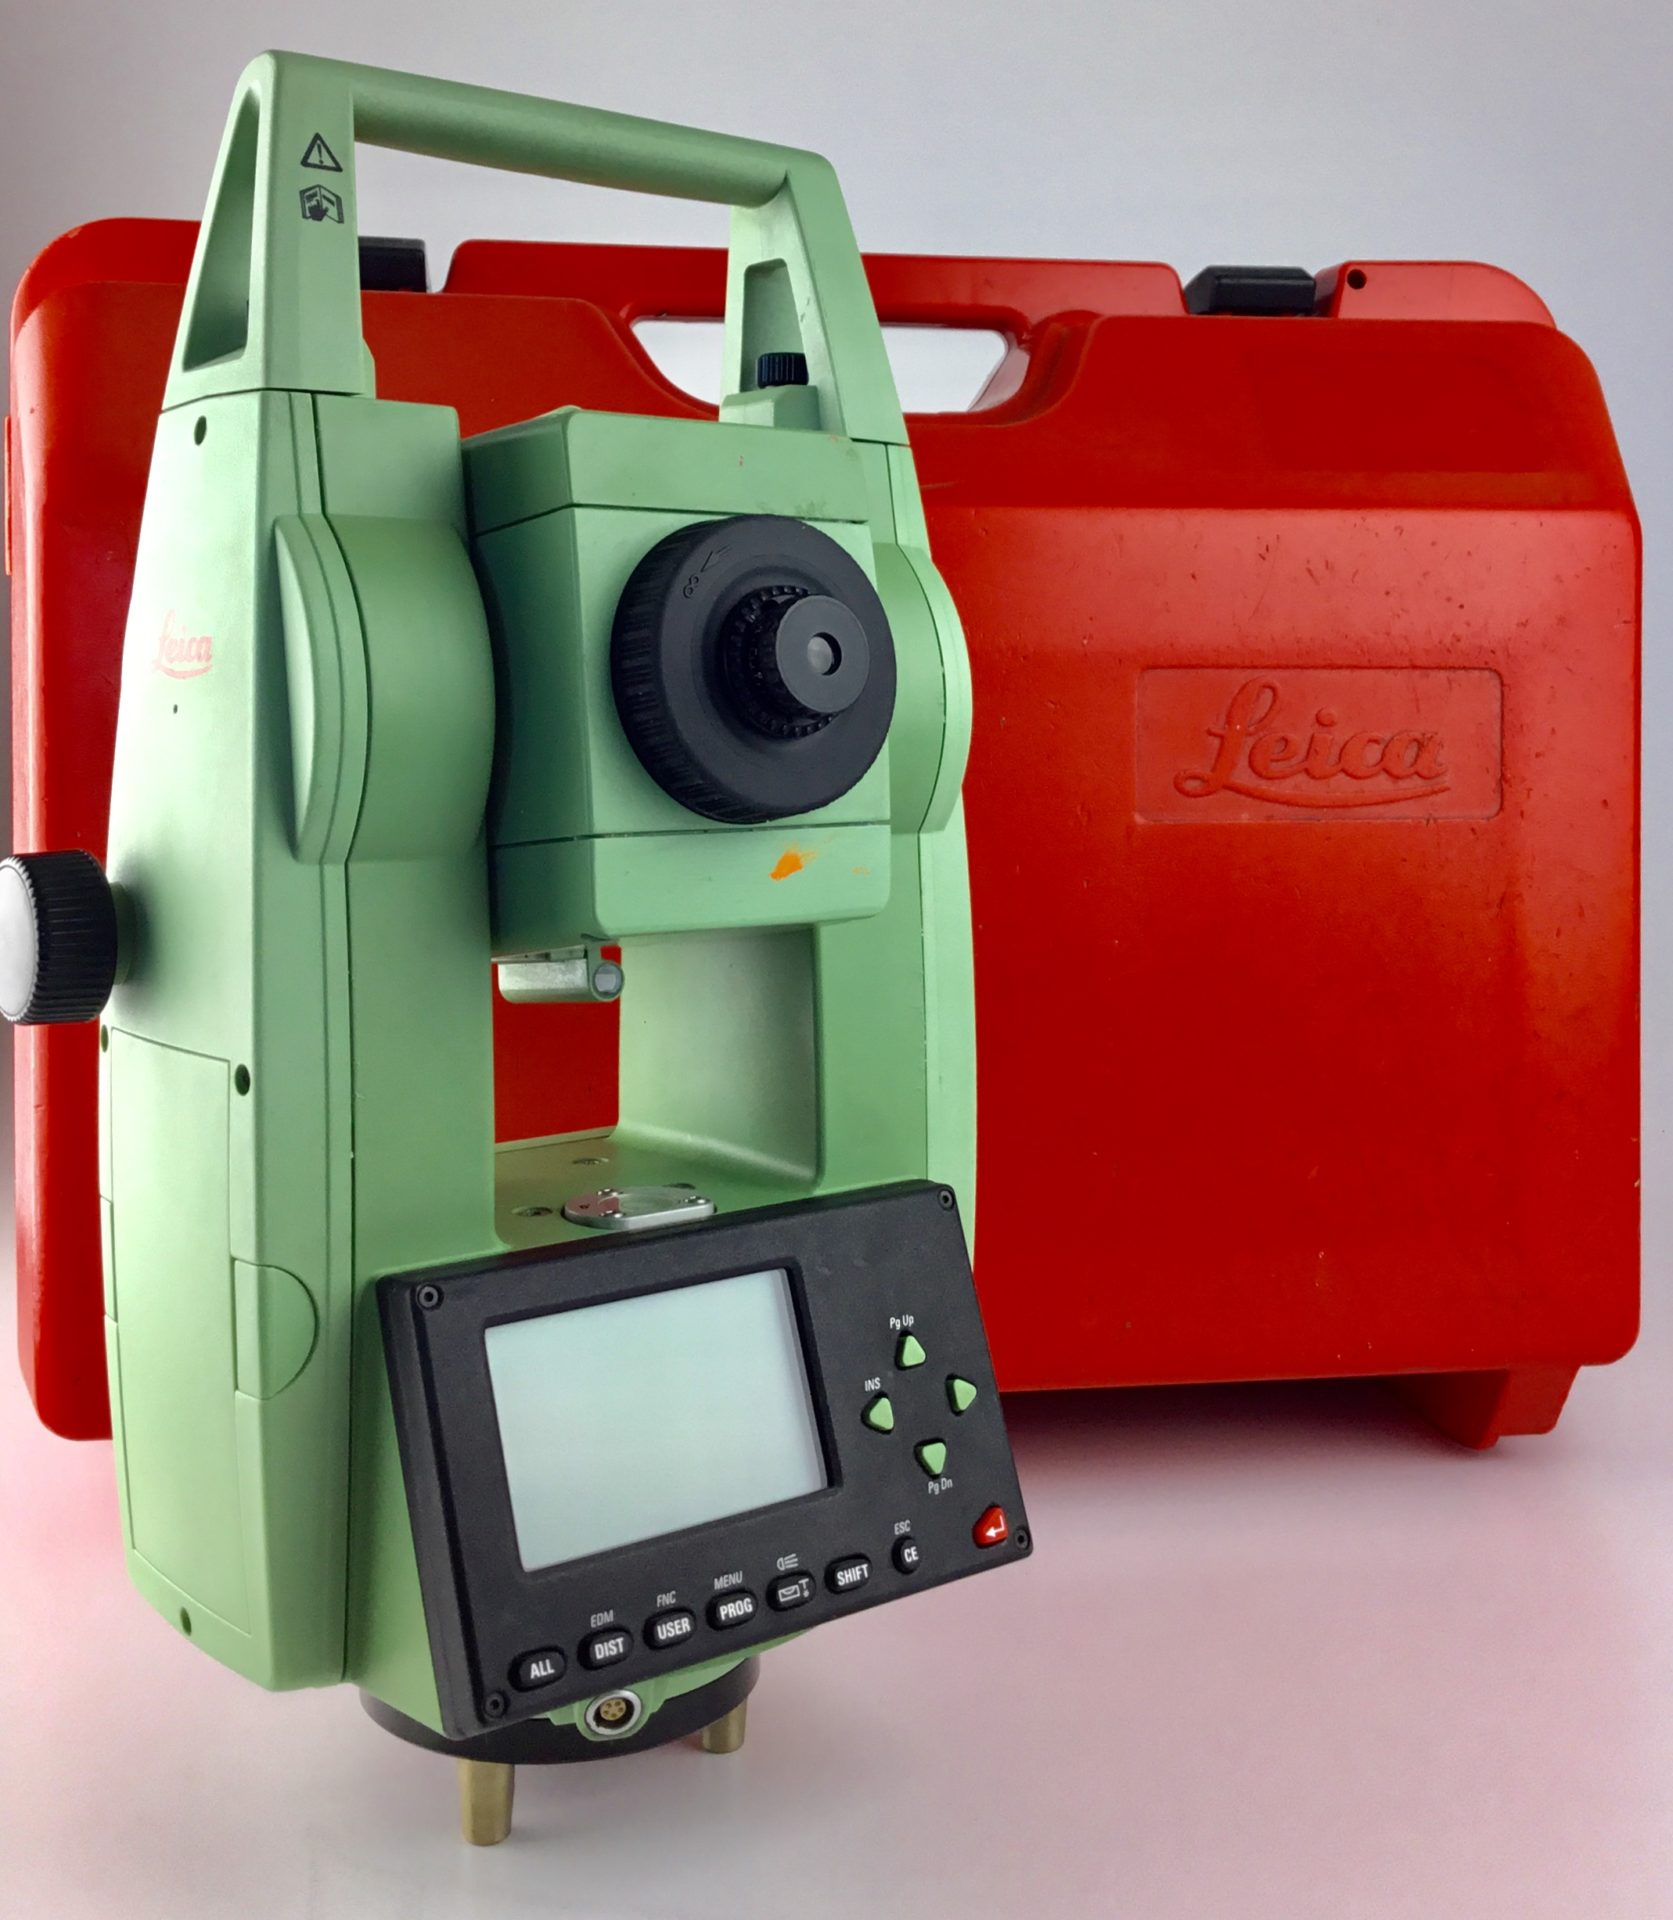 Leica Tcr 305 5 U201d Reflectorless Total Station